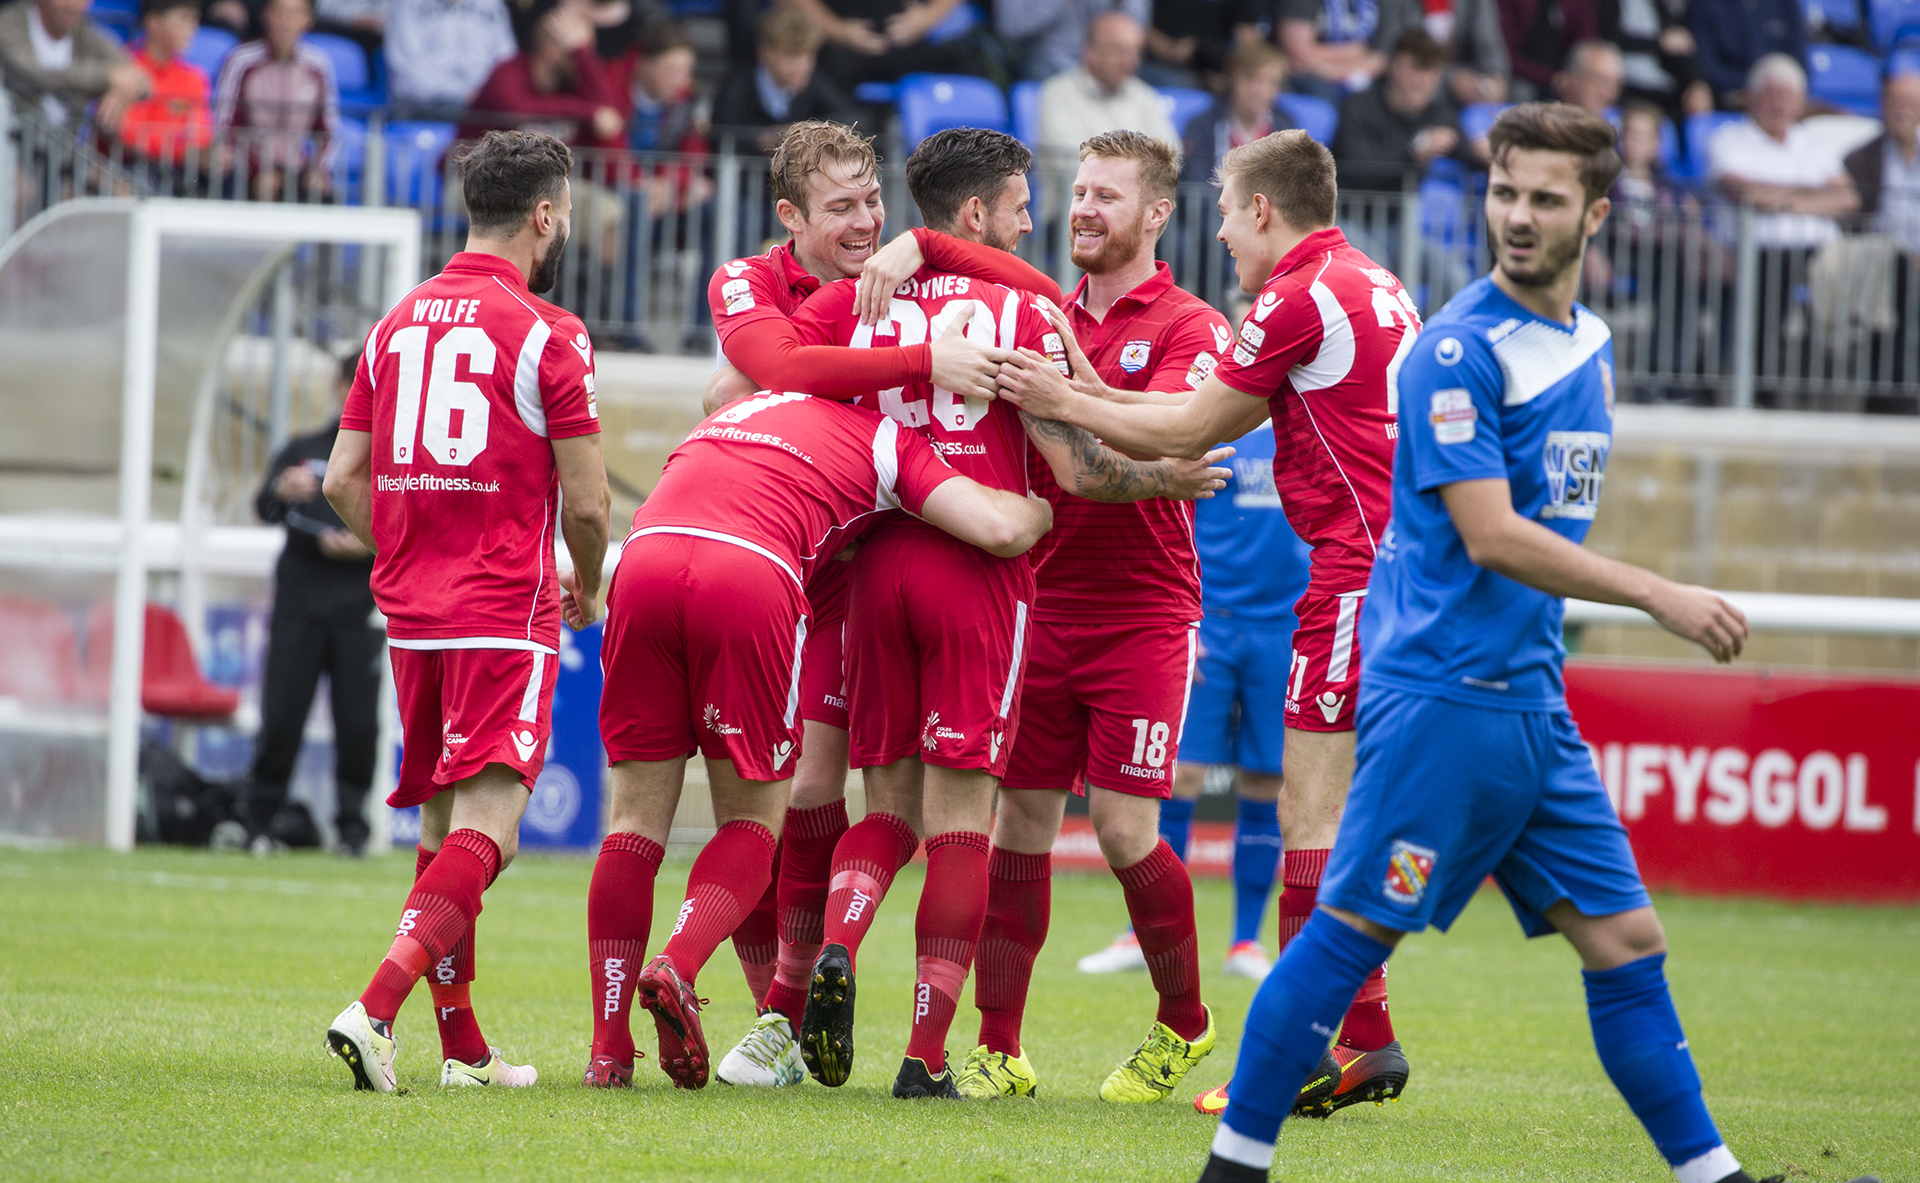 The Nomads celebrate Wes Baynes' stunning opener - © NCM Media